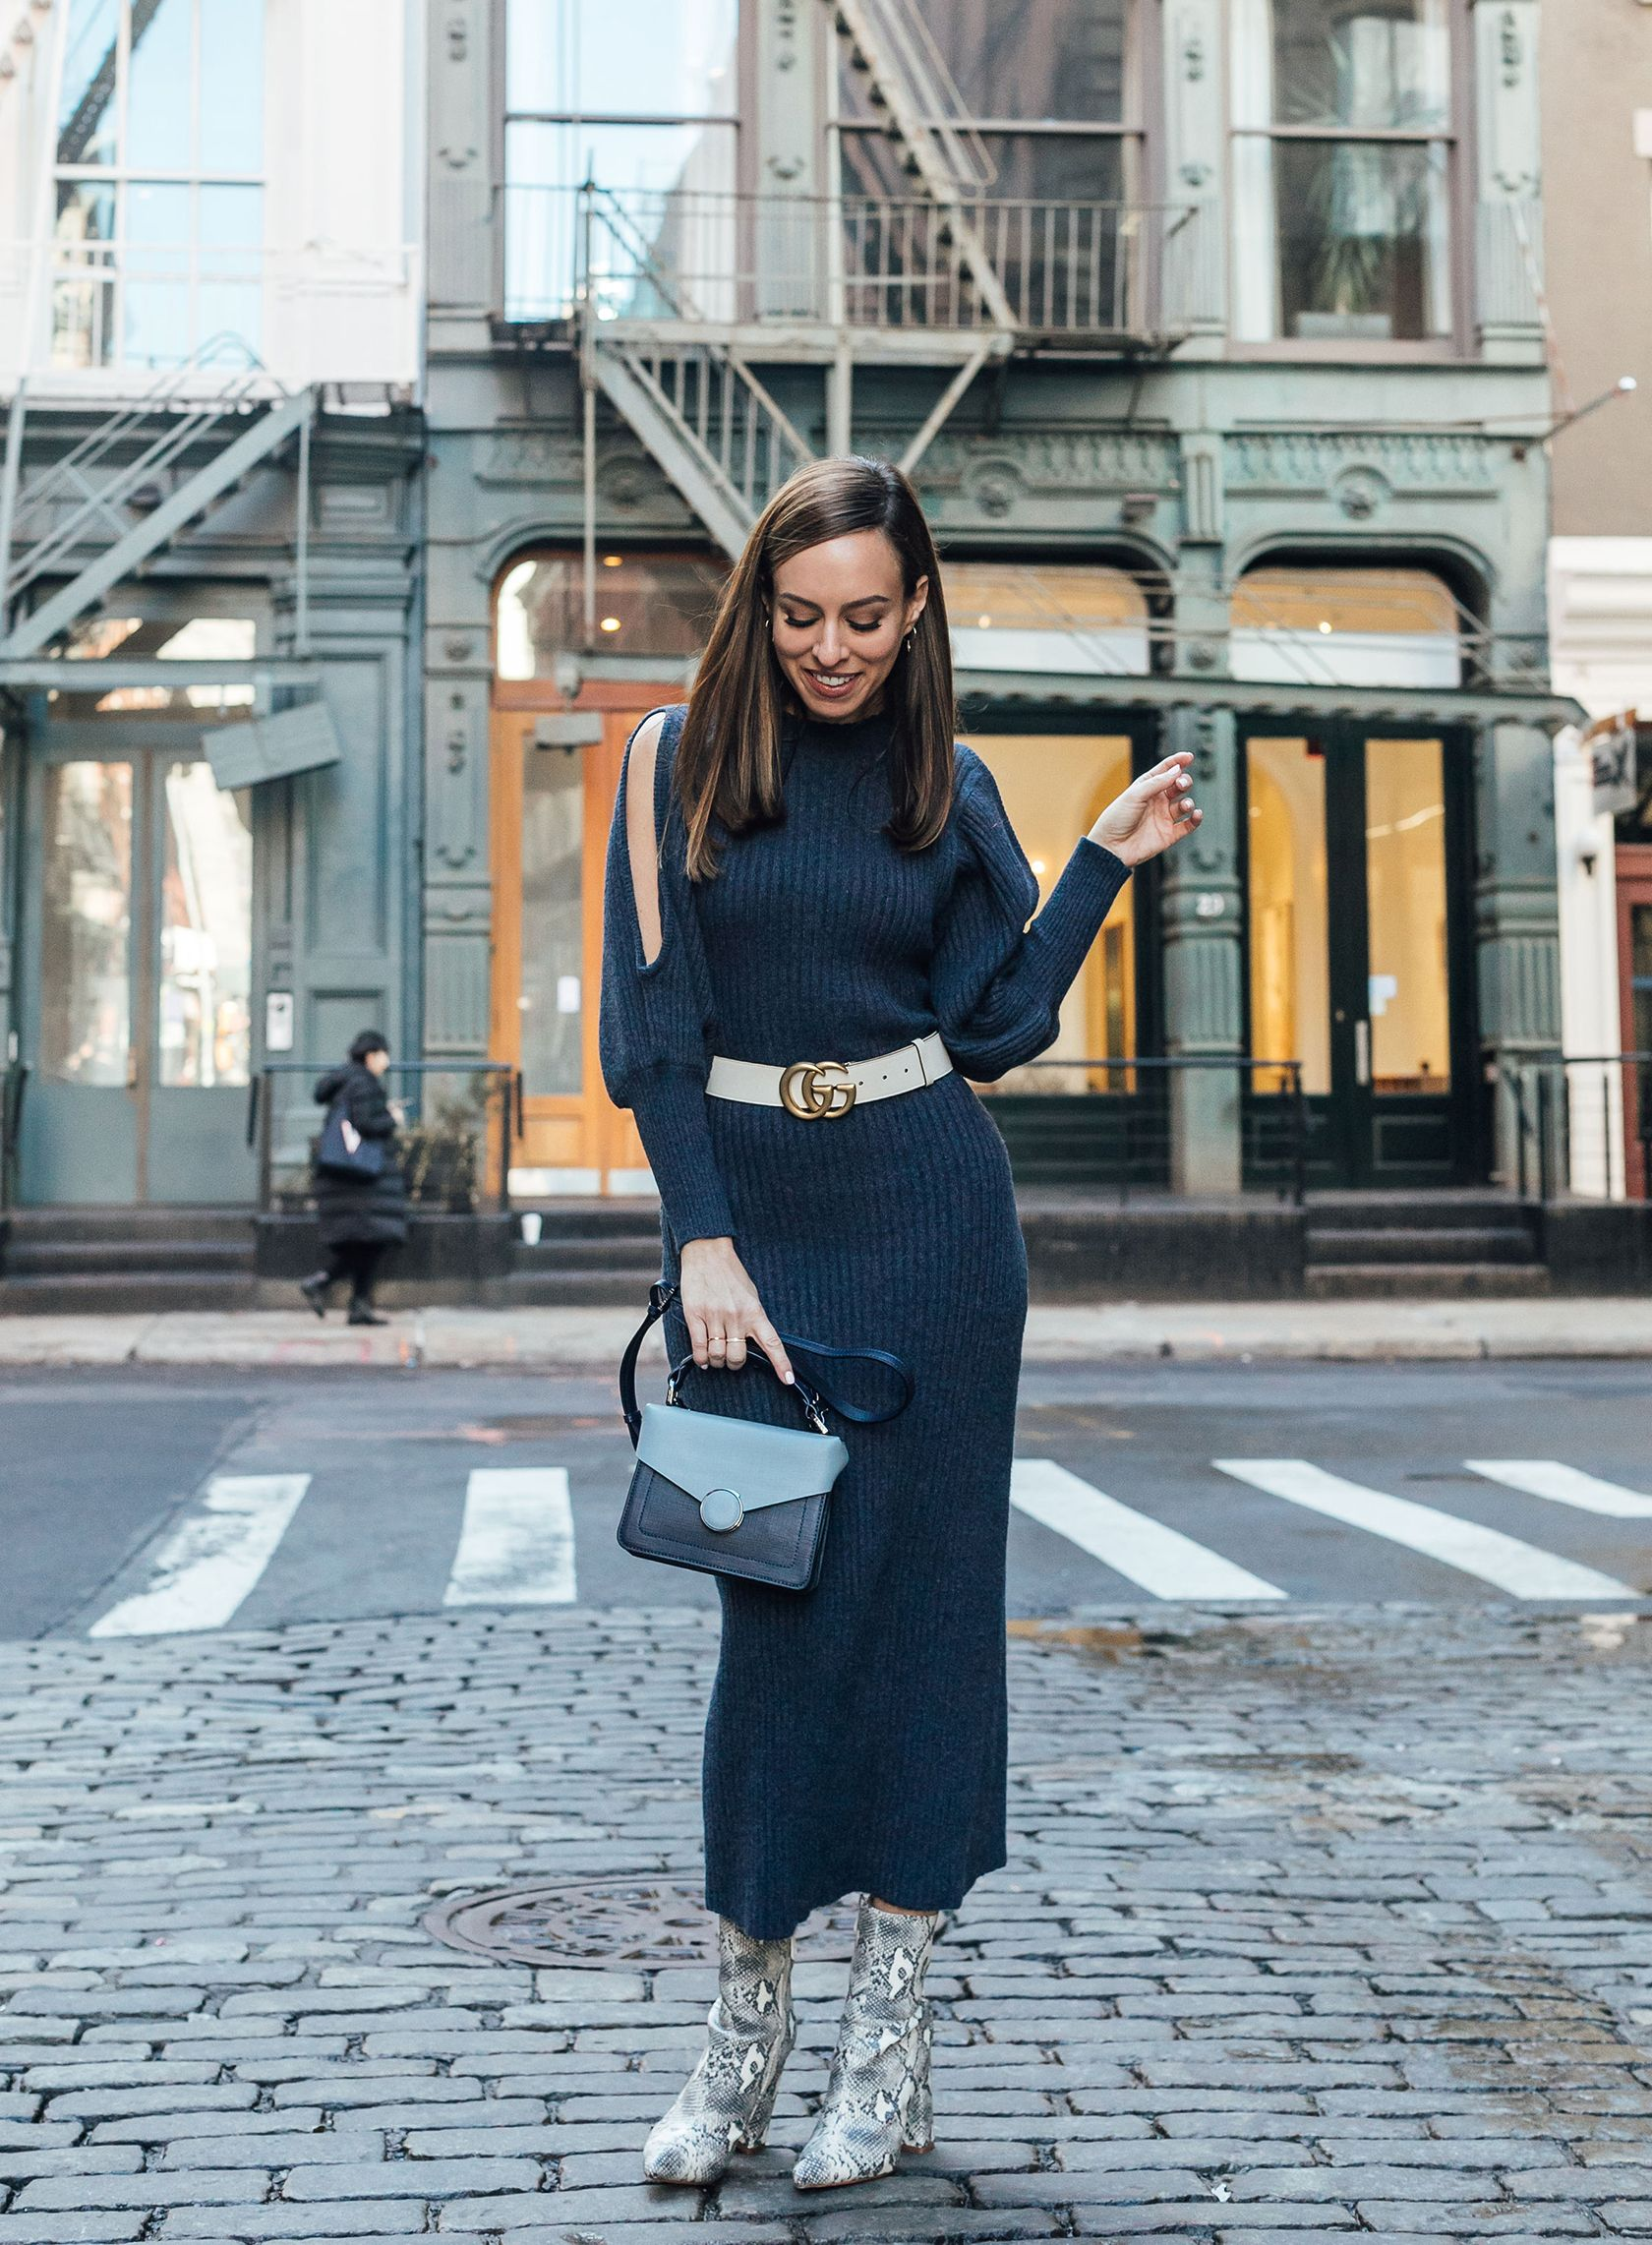 d5202e7ce306c Sydne Style shows new york fashion week street style trends in gucci belt sweater  dress and snakskin booties #sweaterdress #fashionweek #streetstyle ...